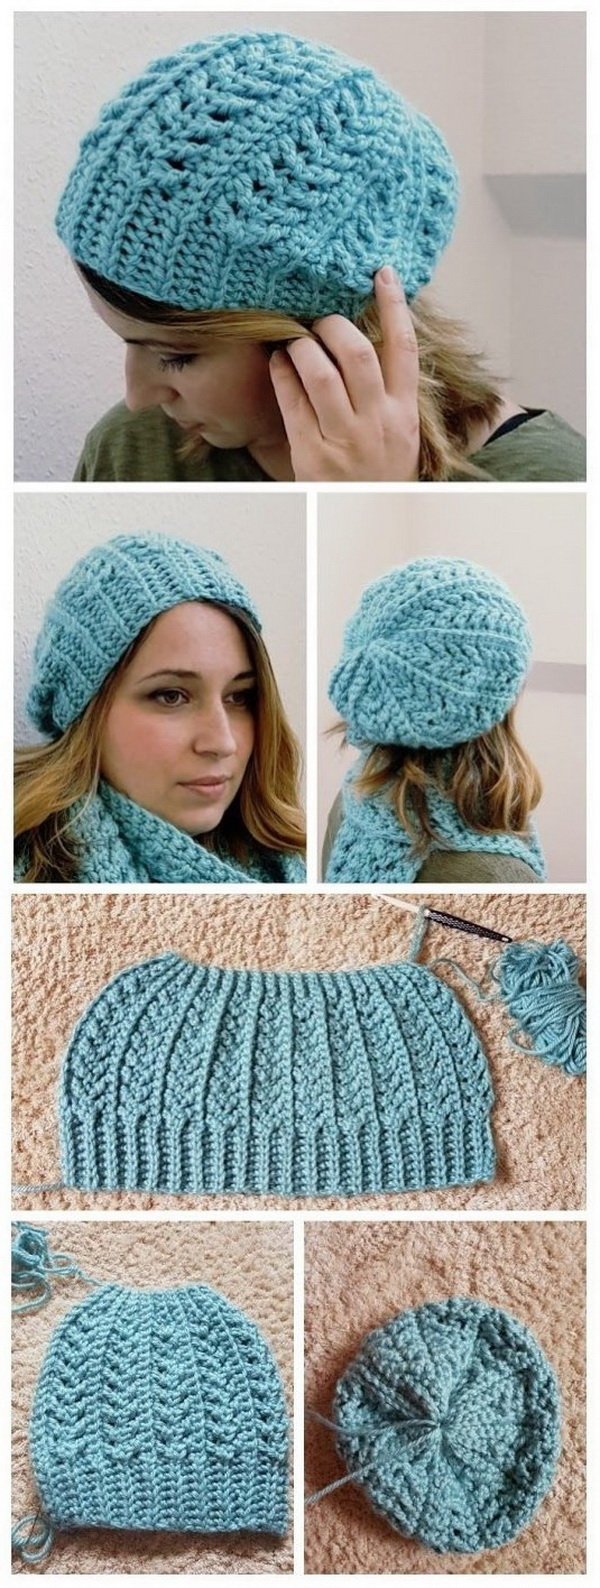 Easy and fun crochet projects with free patterns and tutorials crochet flow hat dt1010fo